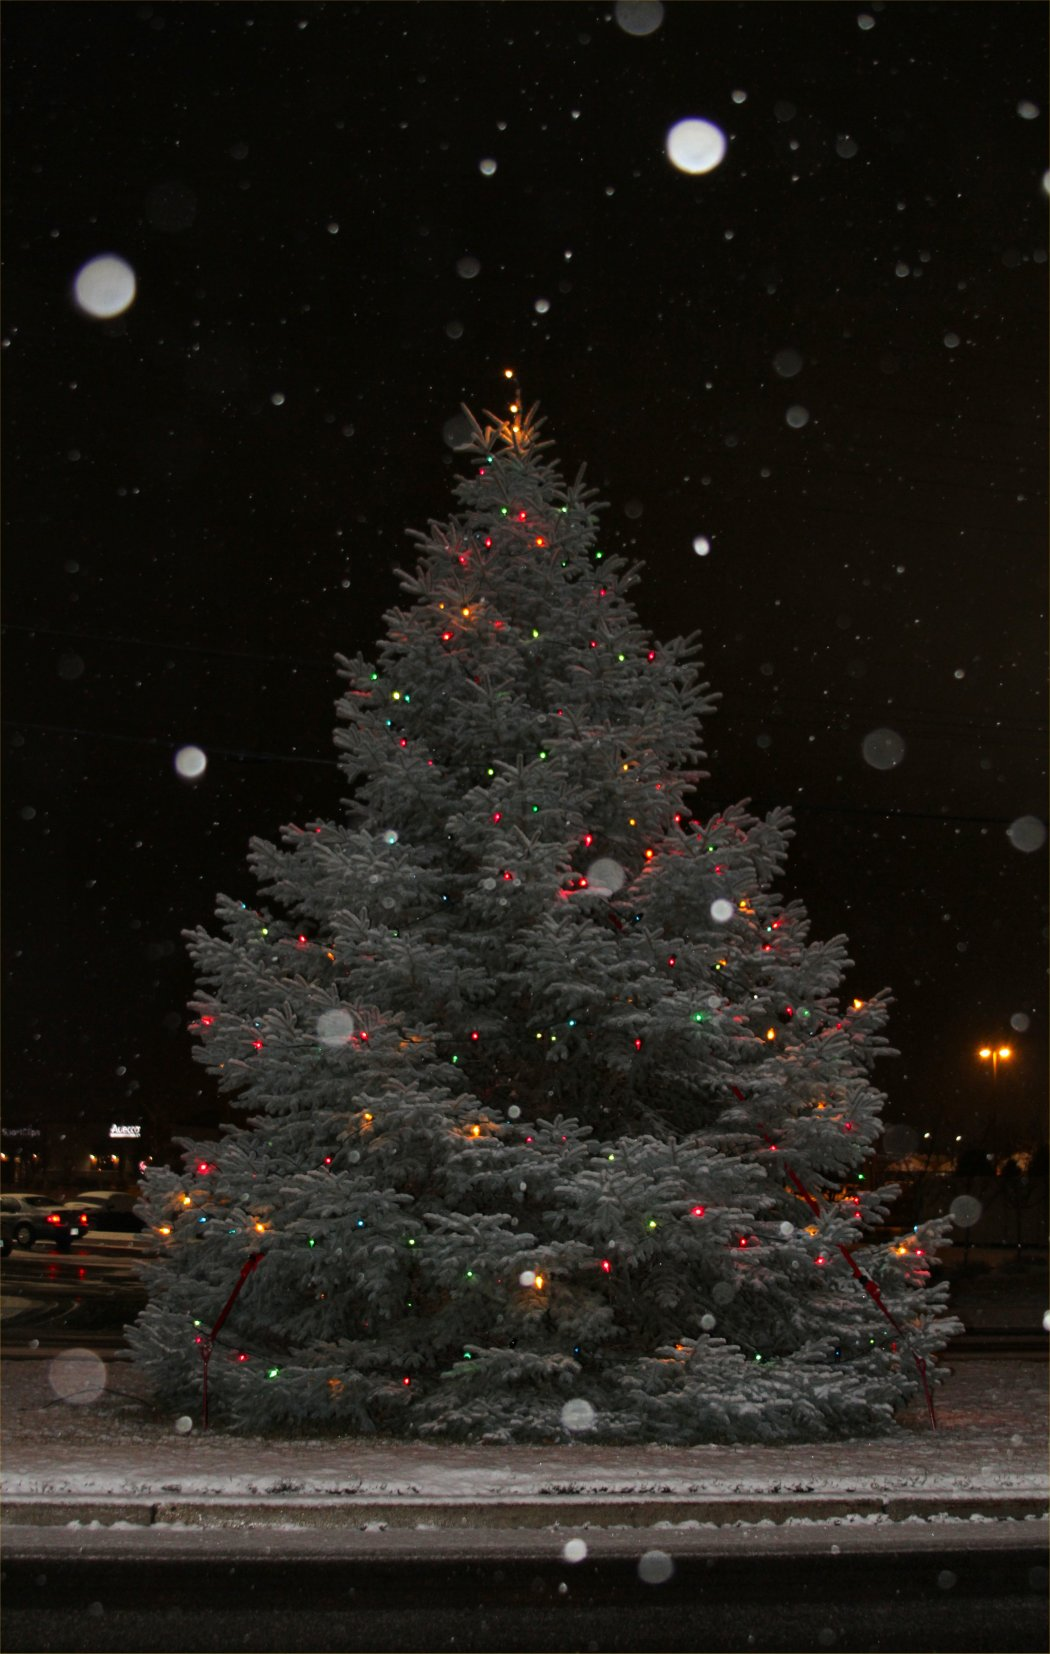 Christmas Tree in West Allis, WI 2009 - soul-amp.com